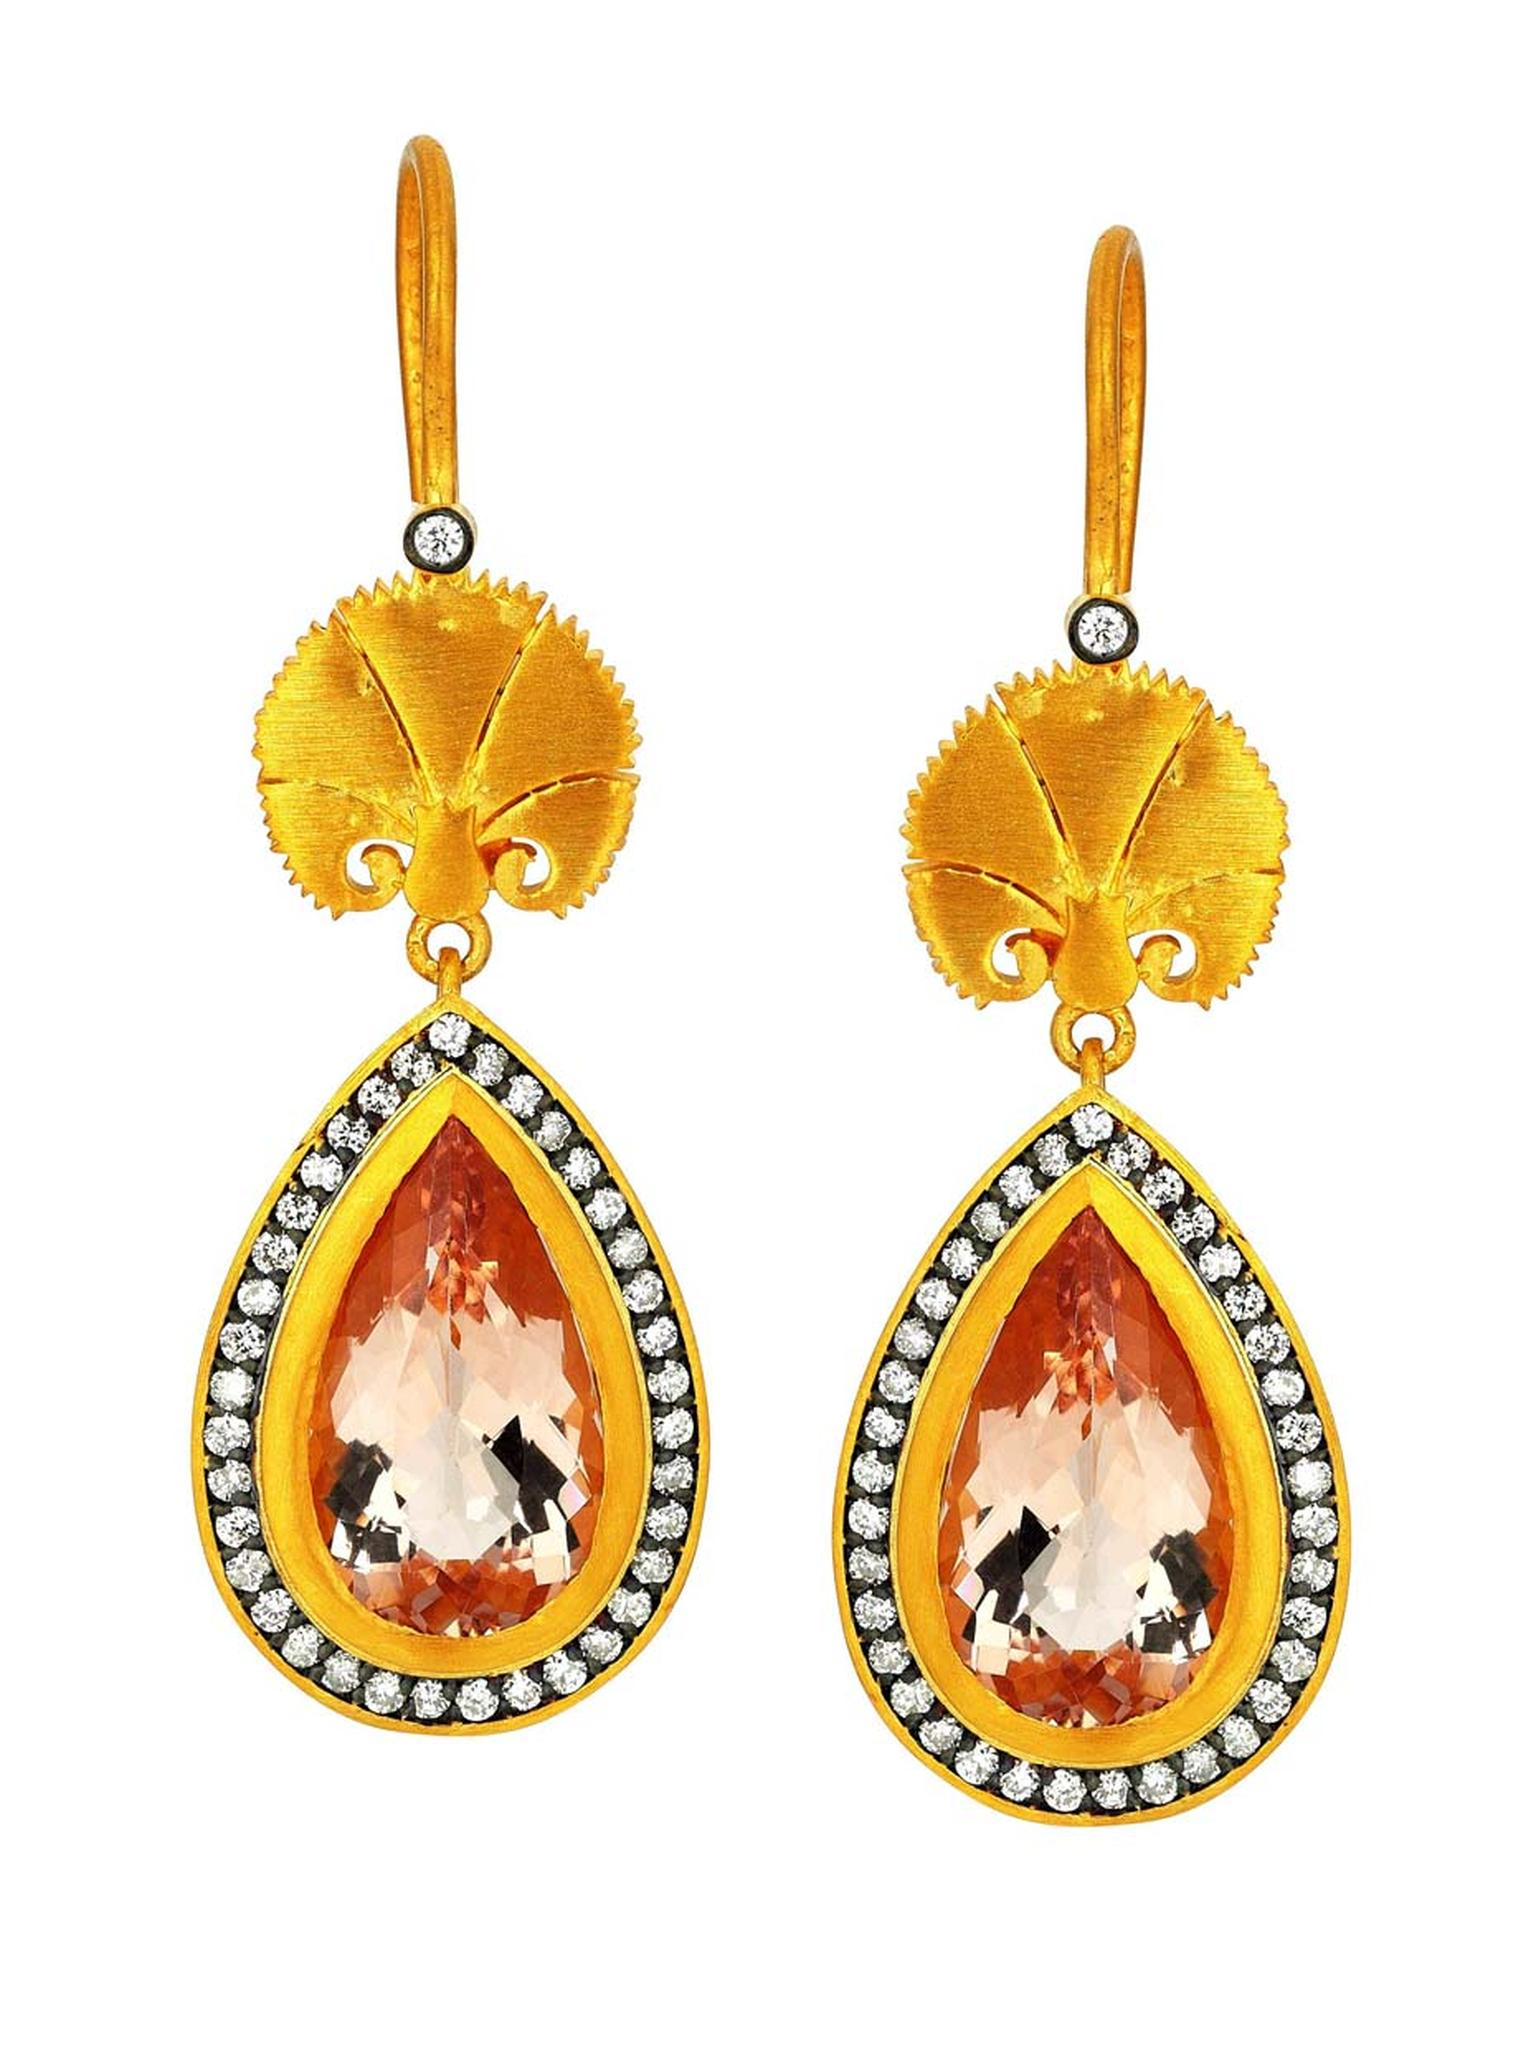 Pinar Oner Wish earrings from the Ottoman Designs collection in yellow gold with diamonds and morganite.